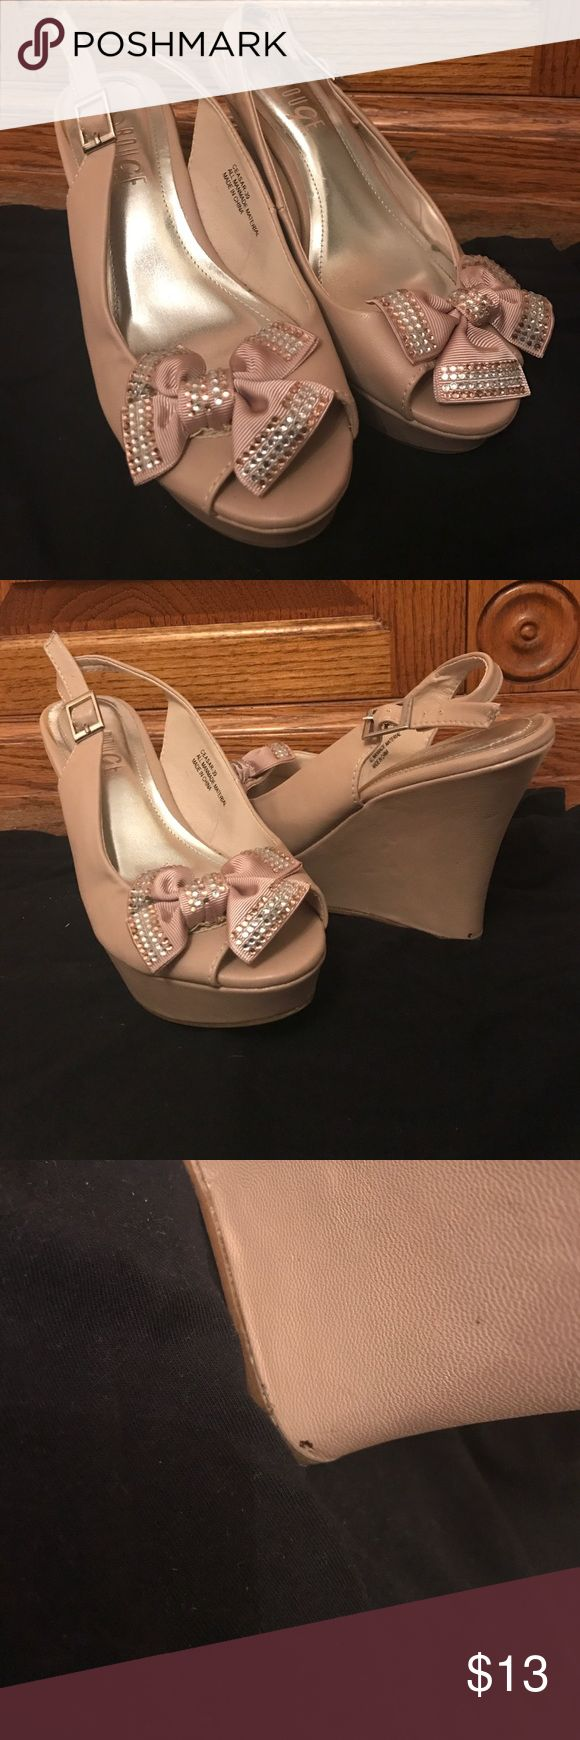 Cream bow studded wedges. Cream wedges worn. Only one mark on the bottom shown in picture. The shoe strap feature a bow with gold and white rhinestones Shoes Wedges